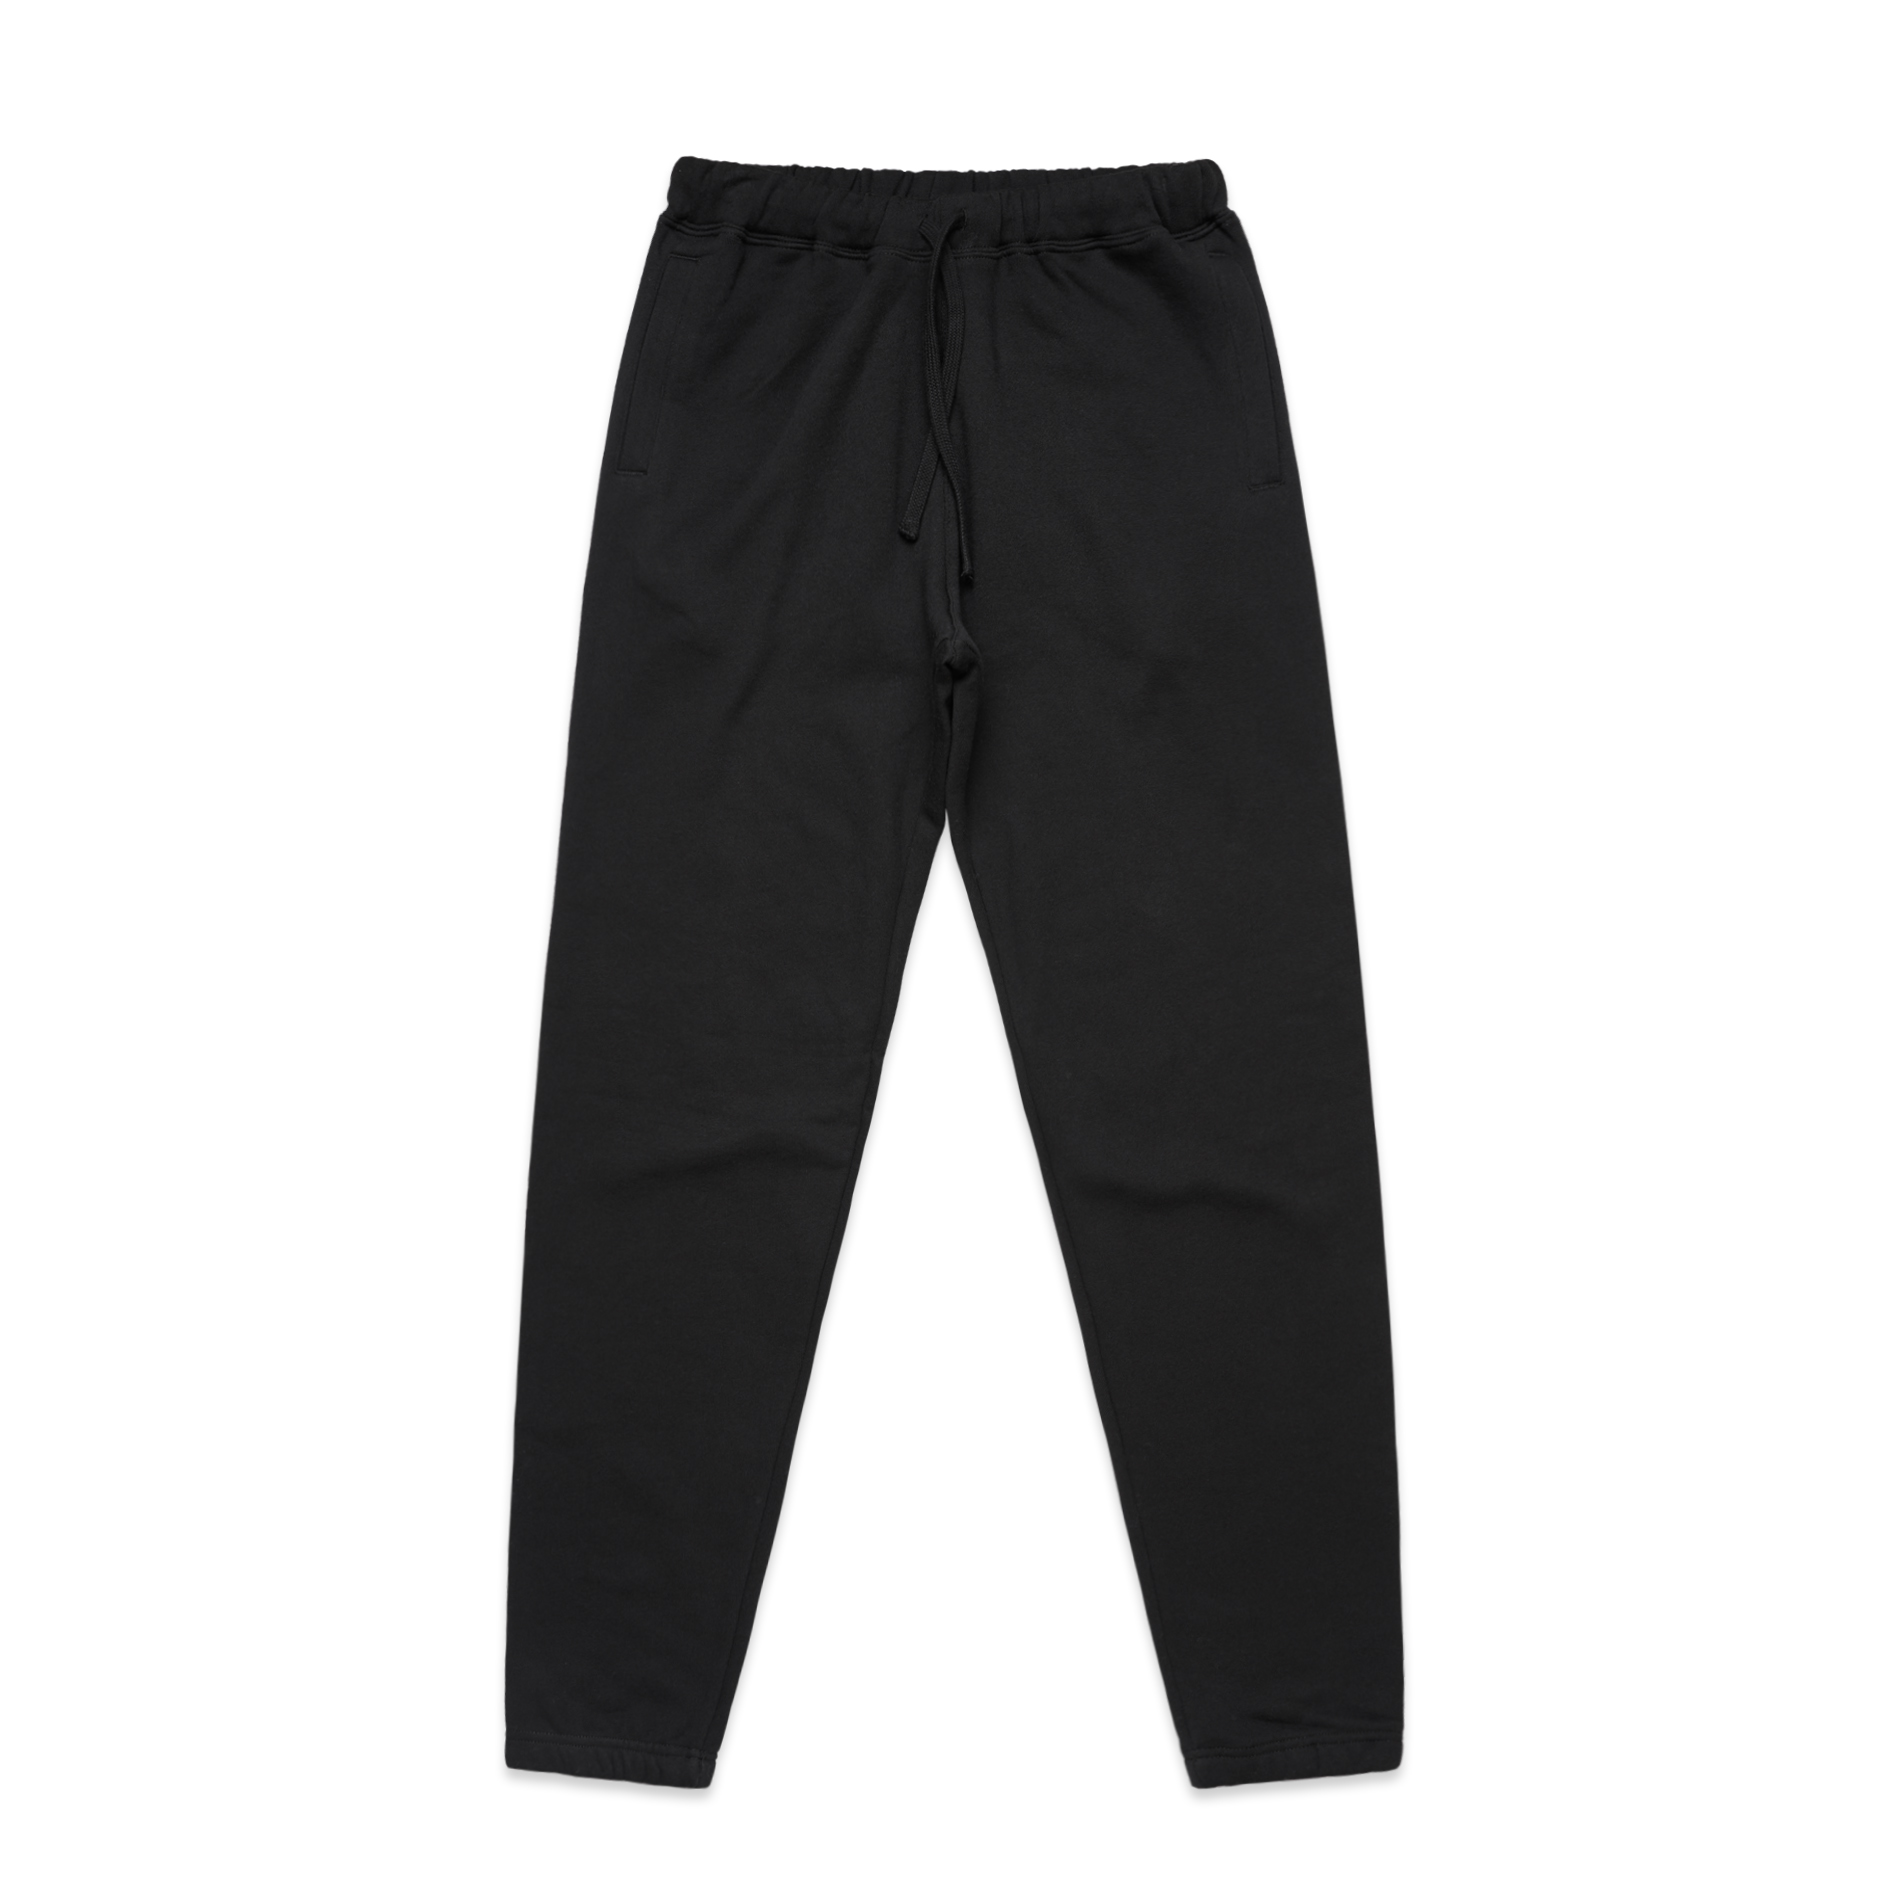 4067 WO'S SURPLUS TRACK PANT